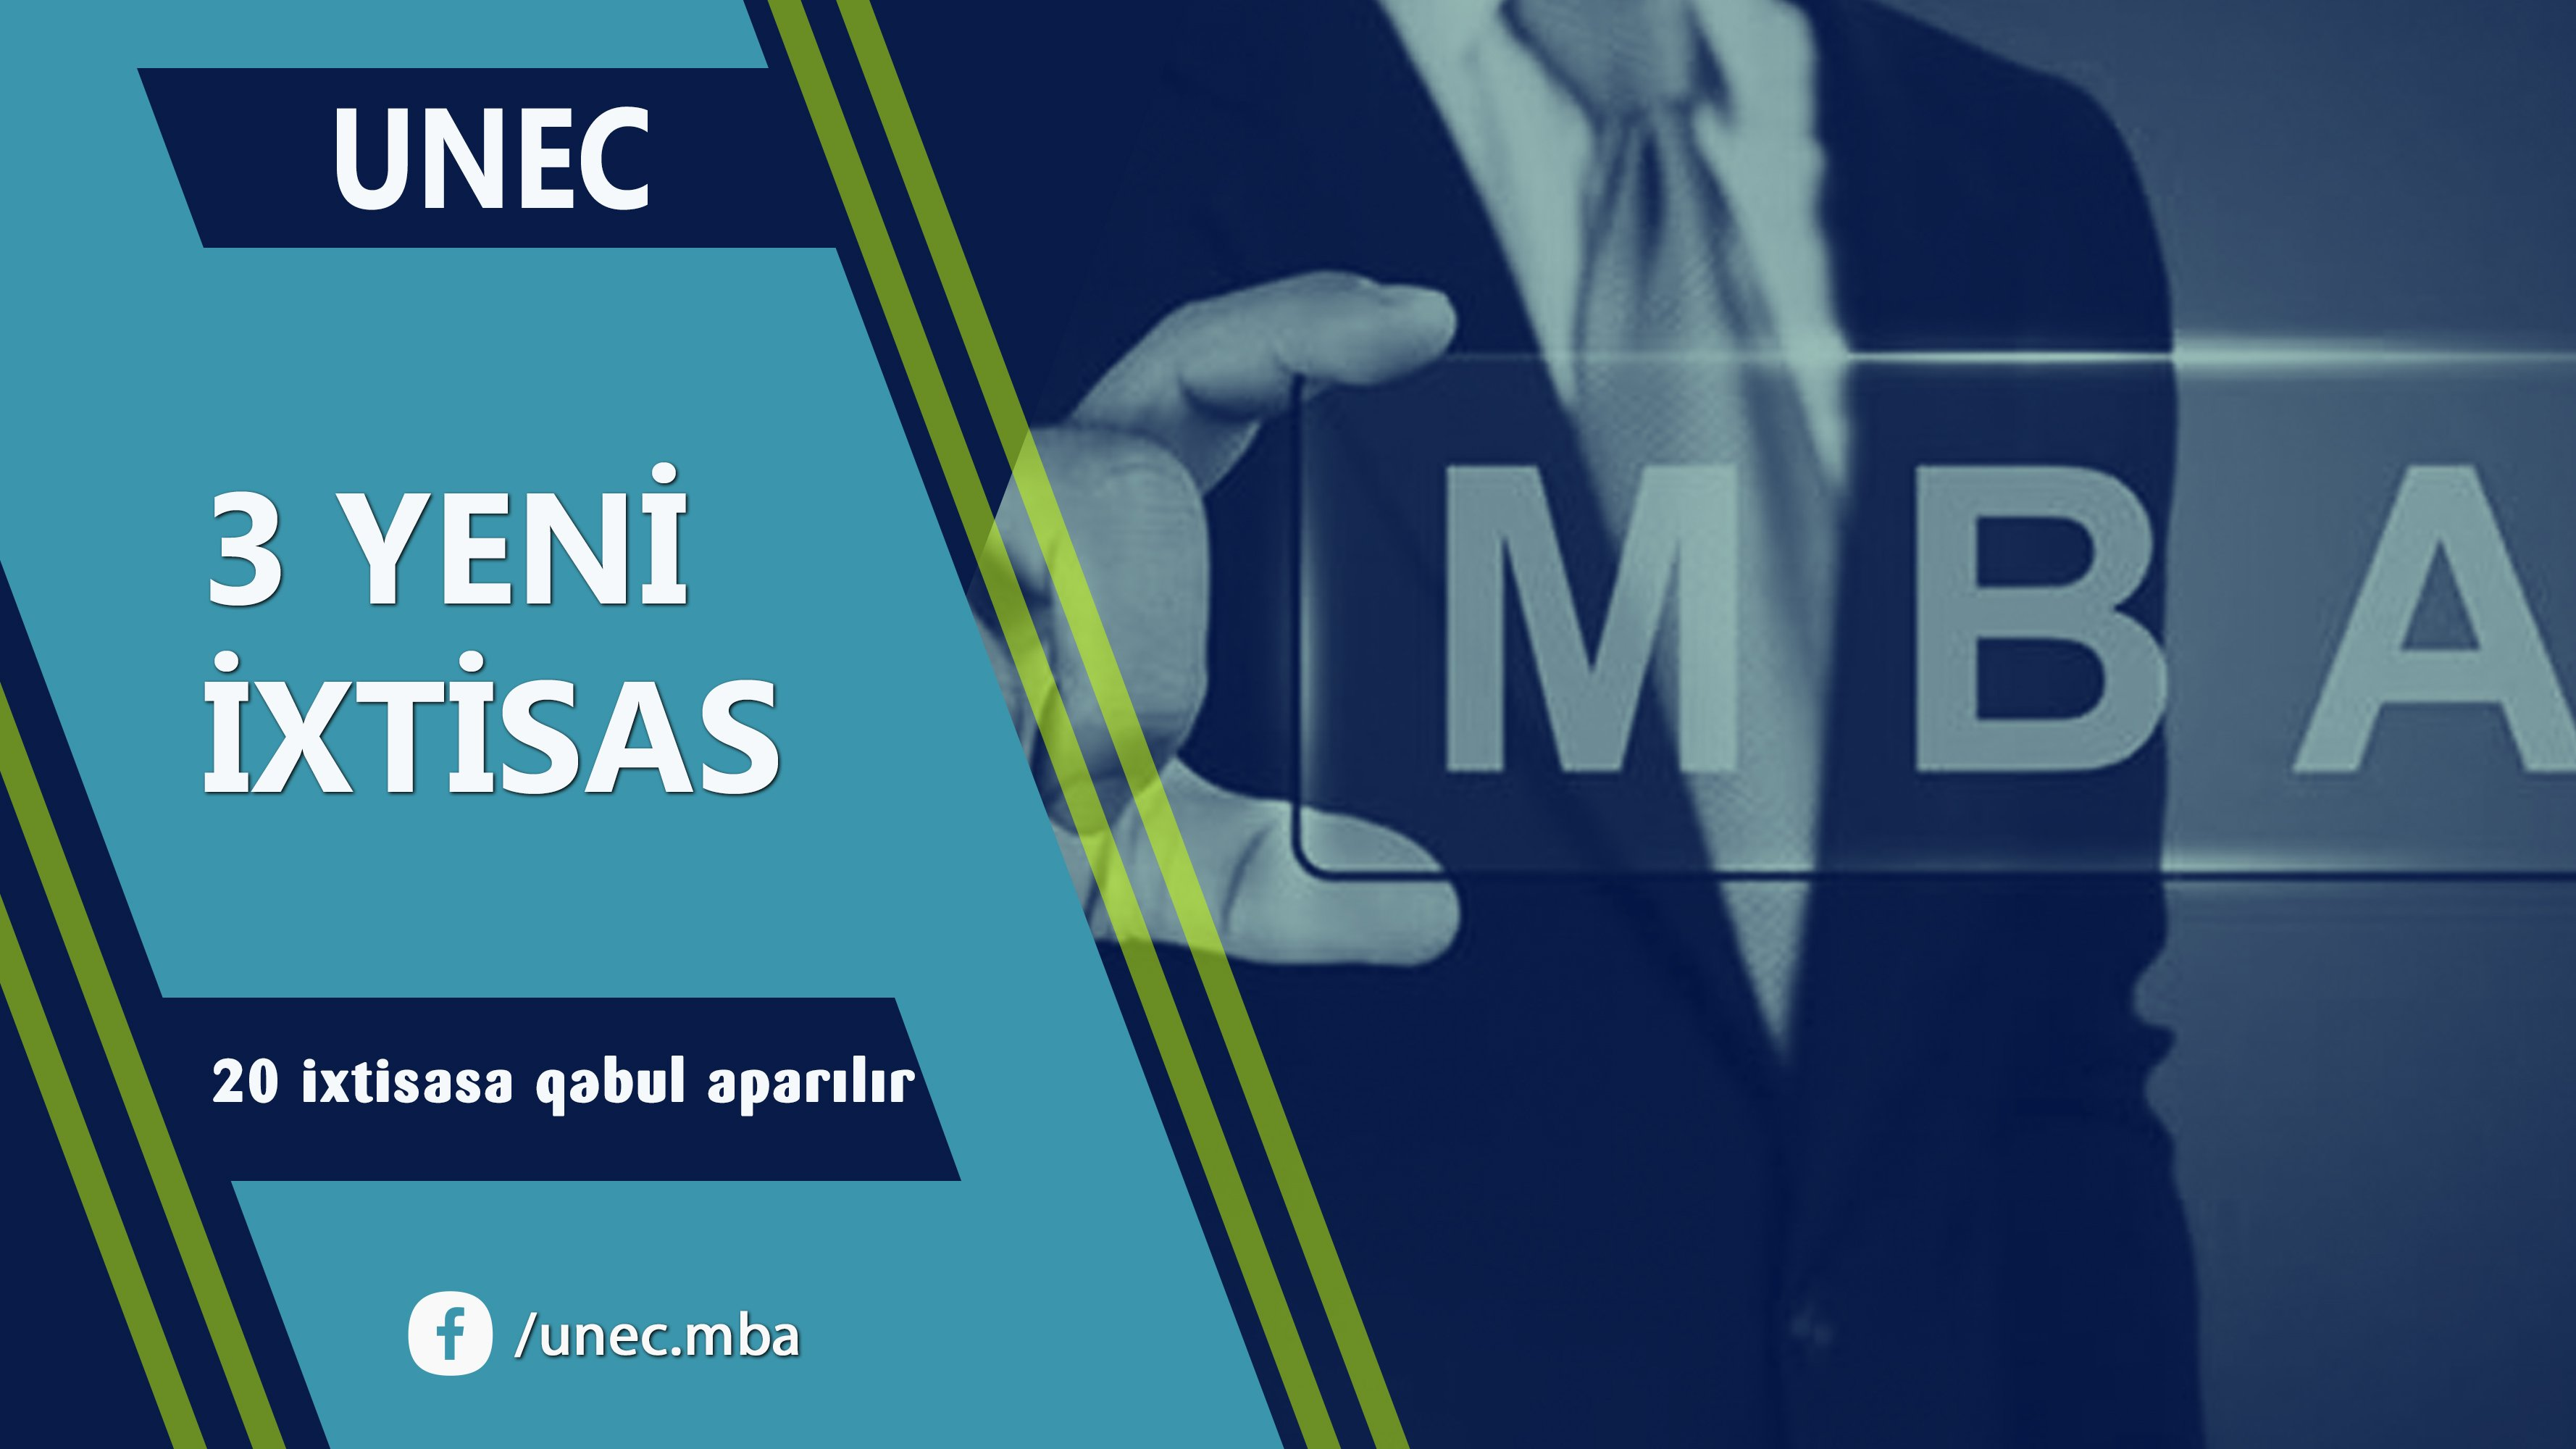 Admission to the MBA program at UNEC will be held in 3 new specialties